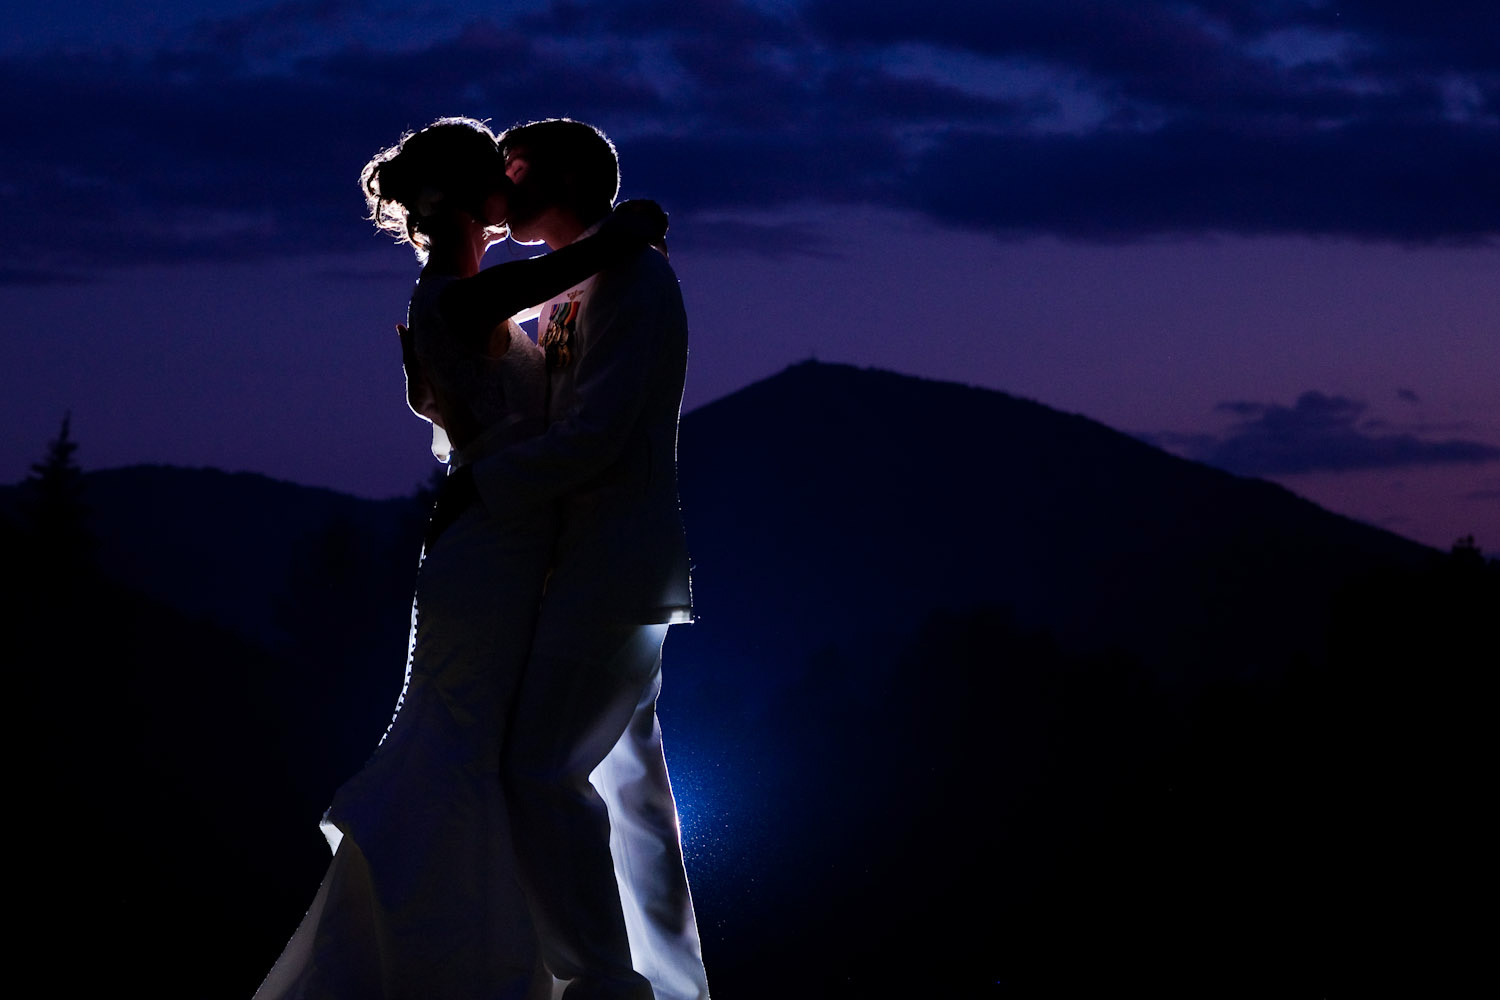 A wedding portrait of a bride and groom, backlit by a strobe, at dusk with the silhouette of a mountain behind them.